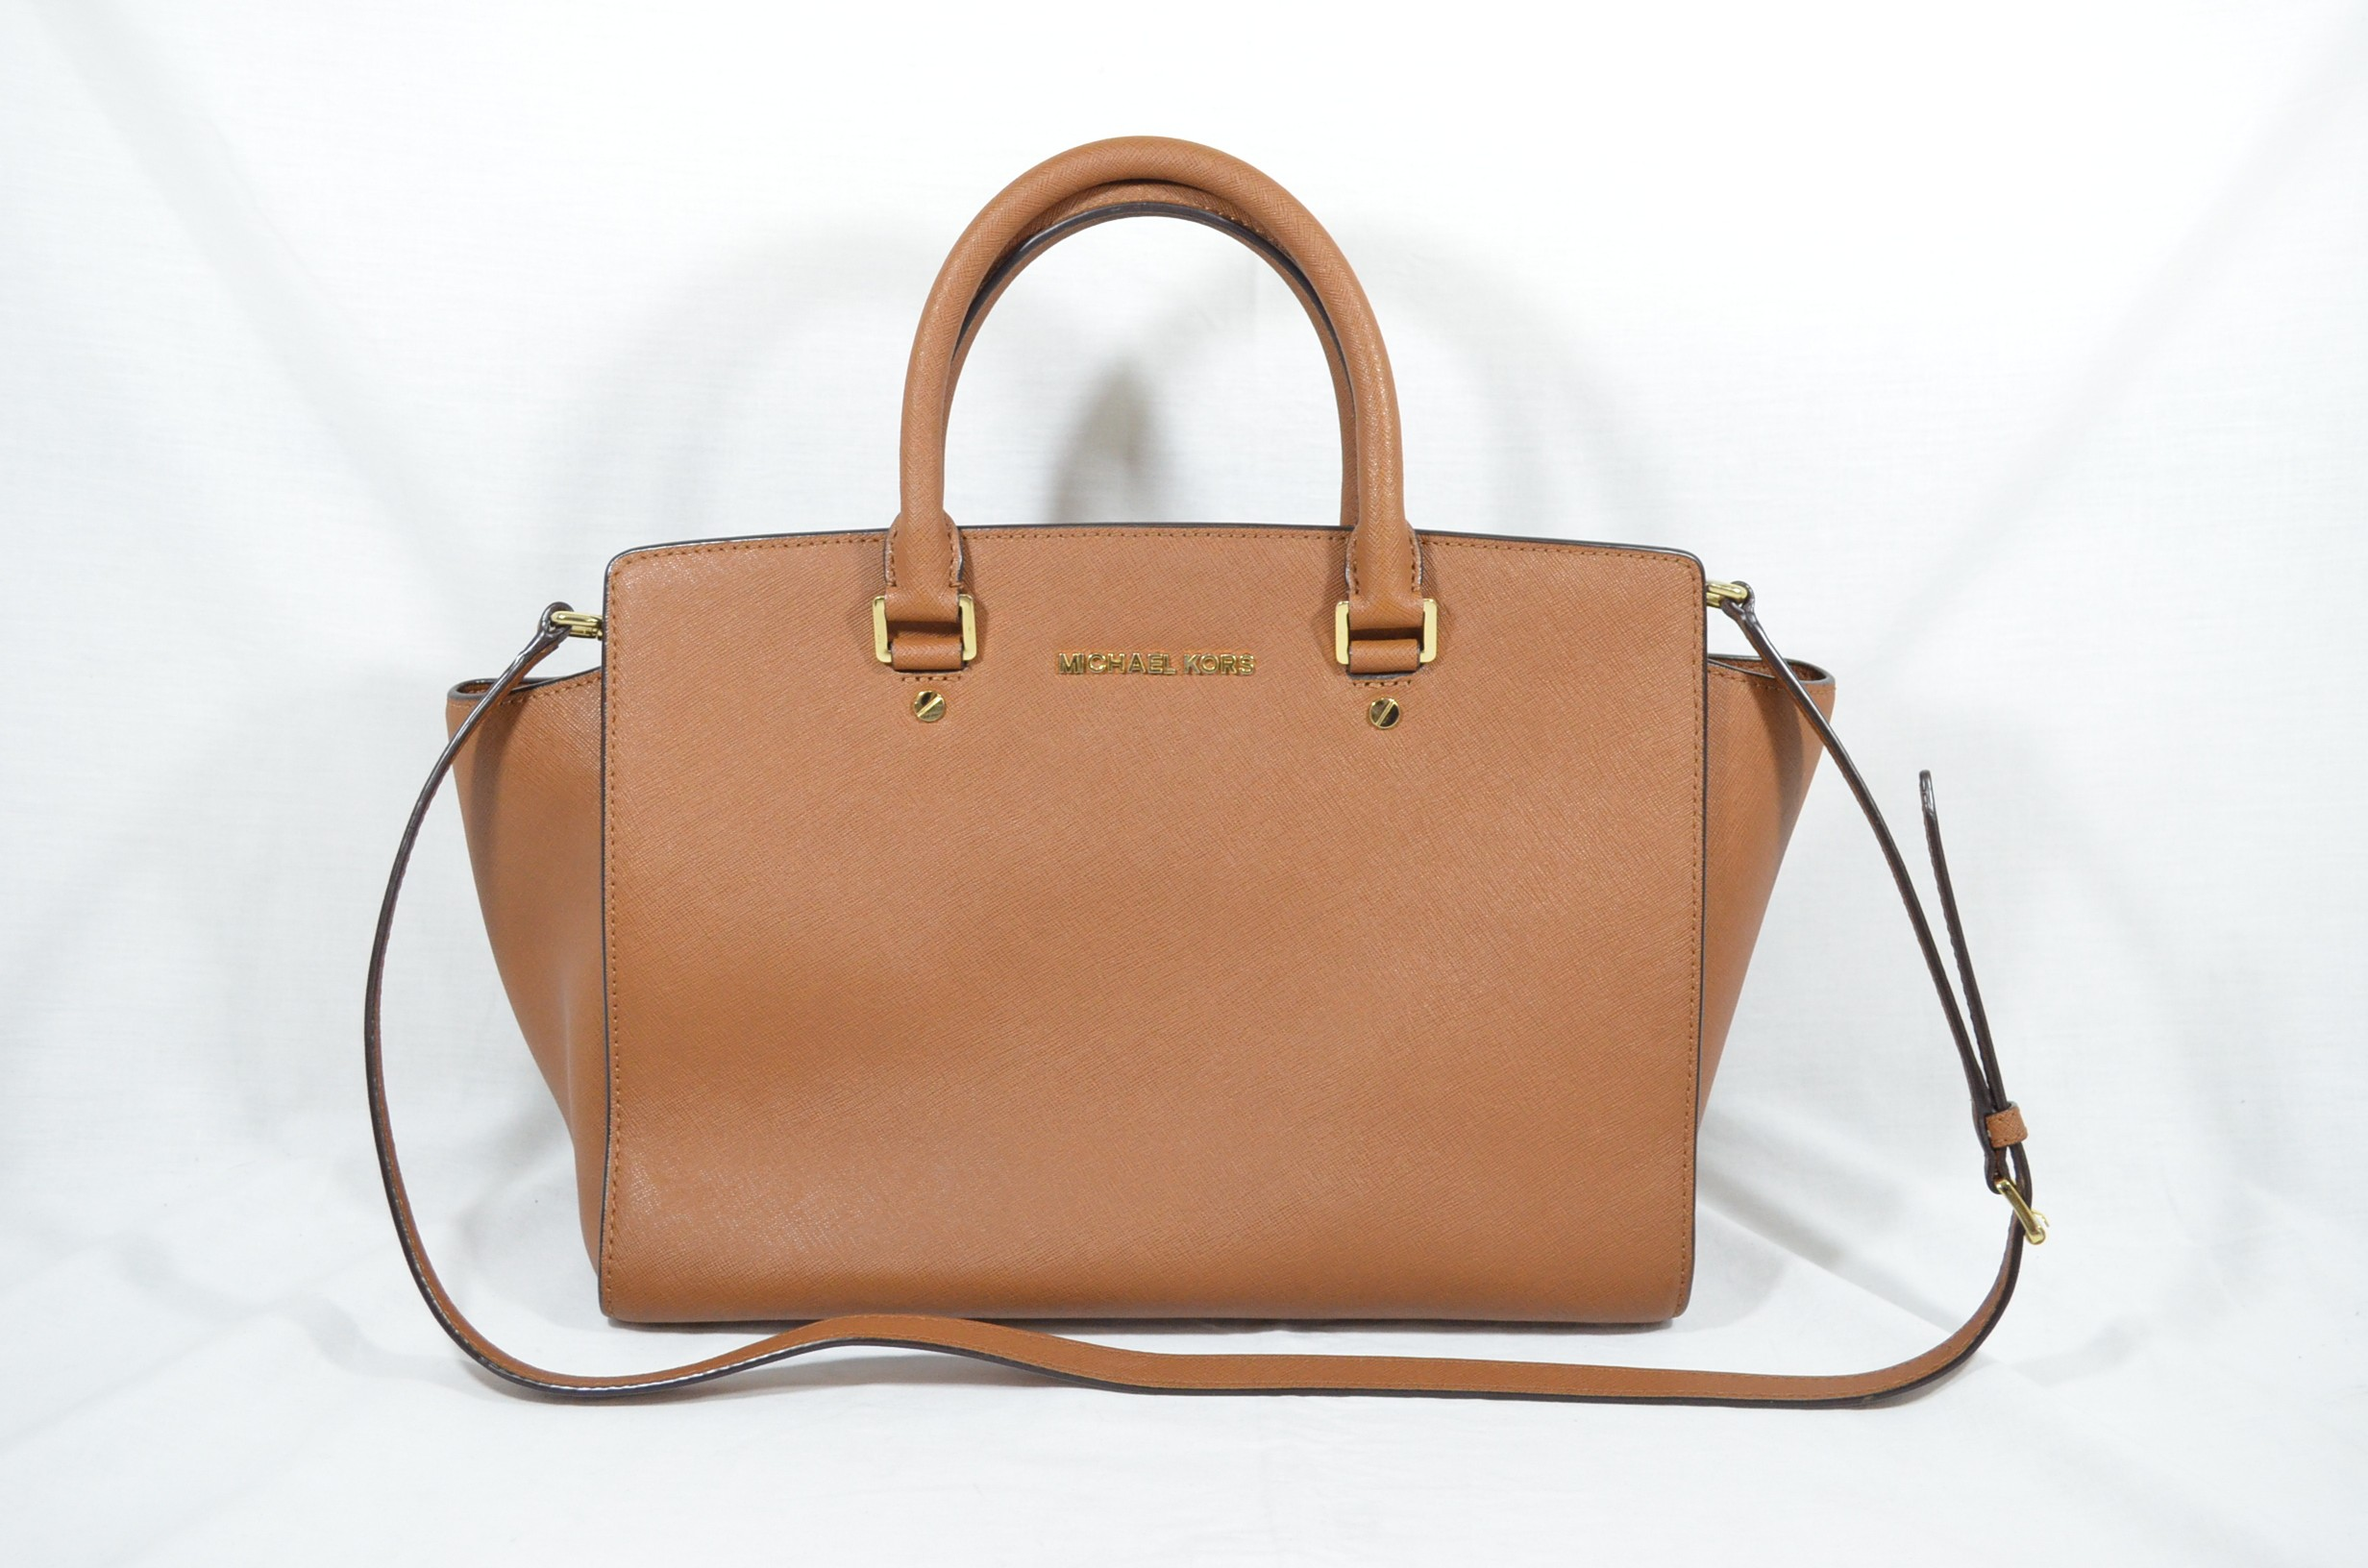 0360c515e21b Michael Kors Large Selma Top-Zip Satchel Luggage Saffiano leather ...